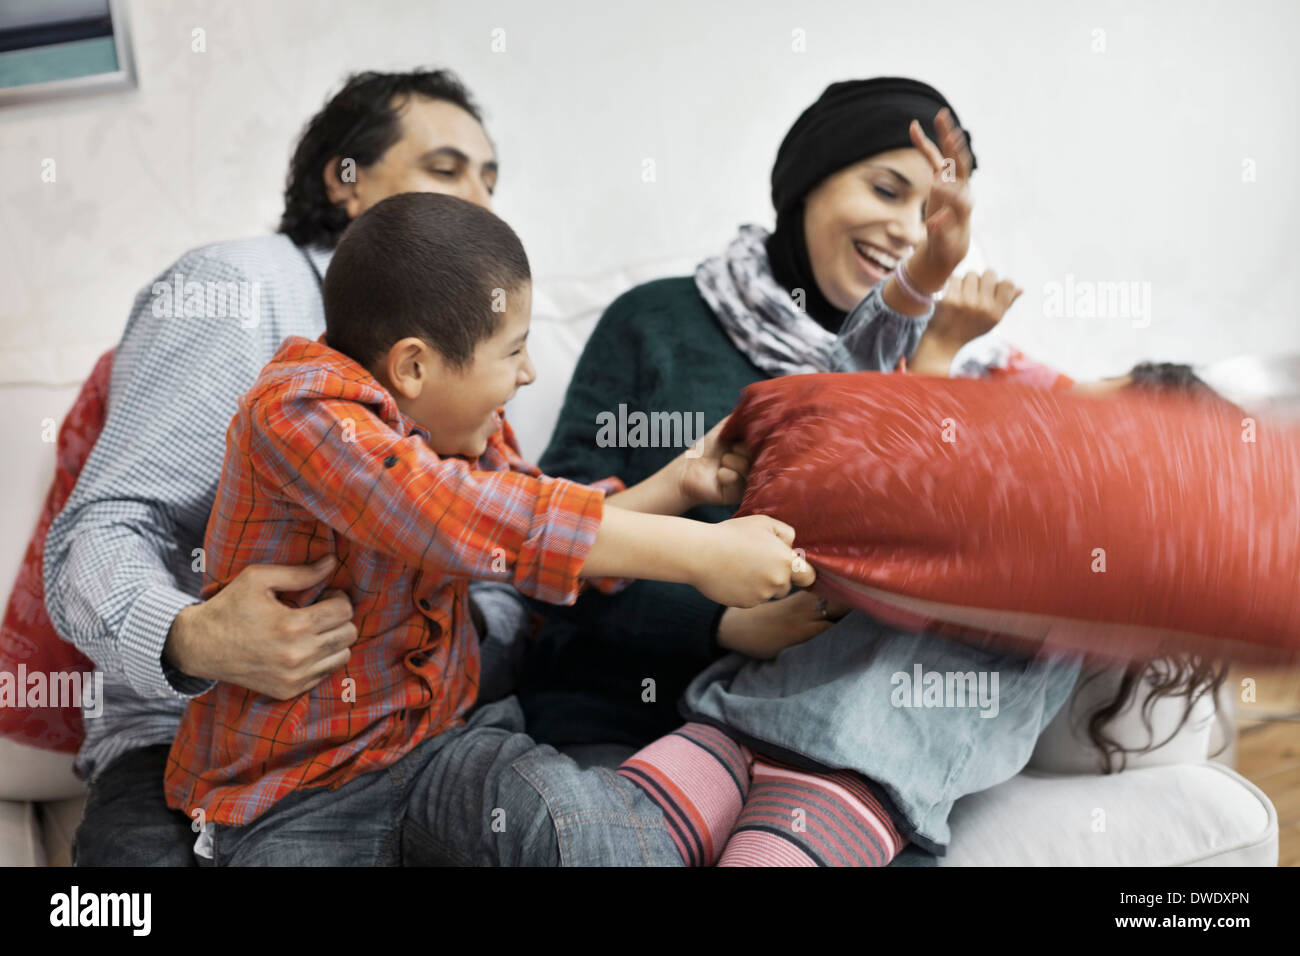 Playful Muslim family in living room - Stock Image